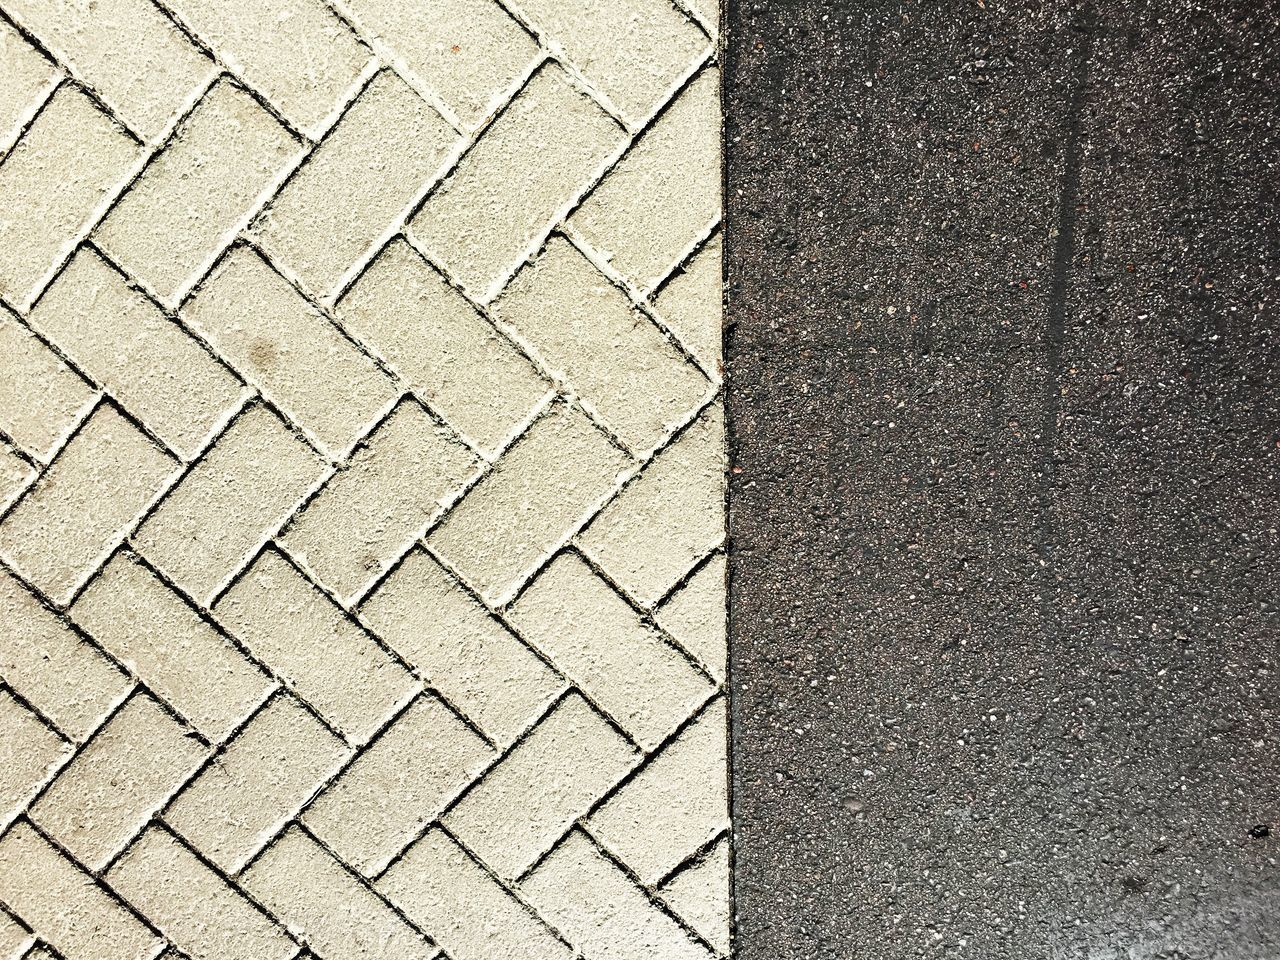 Abstract Abstract Art Abstract Photography Backgrounds Brick Brickporn Bricks Close-up Concrete Concrete Jungle Day Full Frame High Angle View Low Section No People Outdoors Pattern Stone Stone Material Stones Street Street Photography Streetart Streetphotography Textured